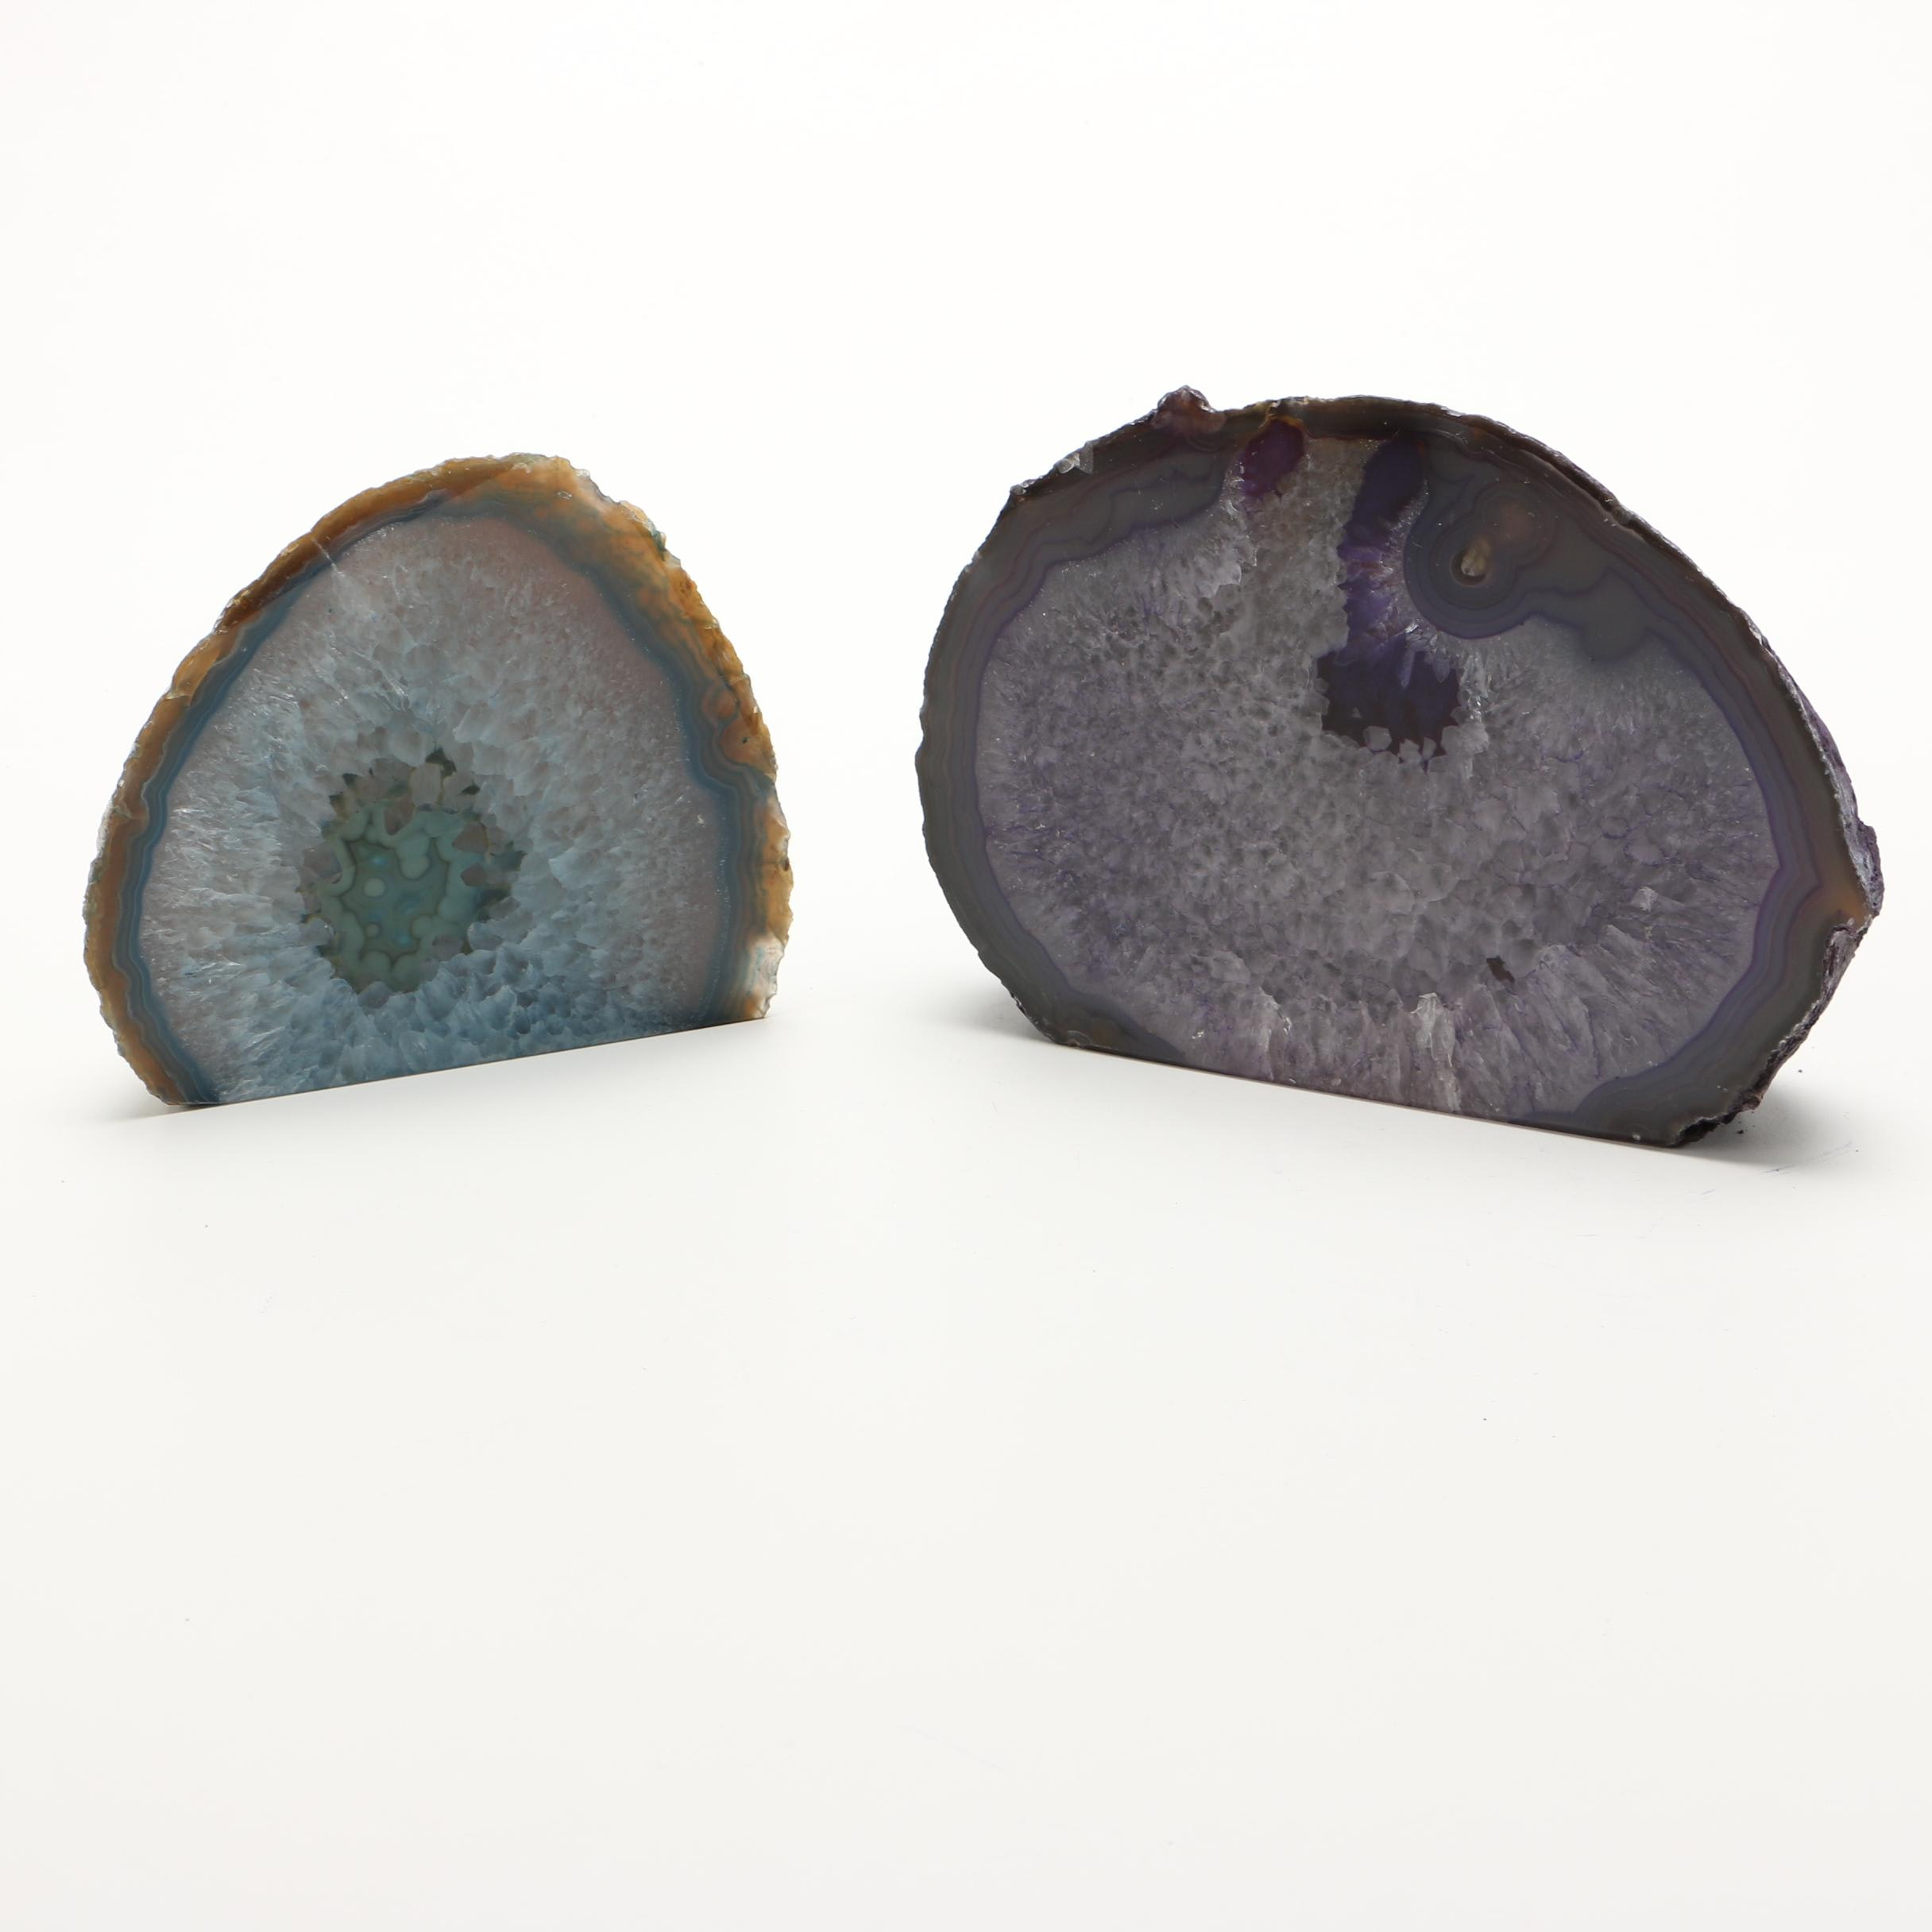 Dyed Agate Bookends